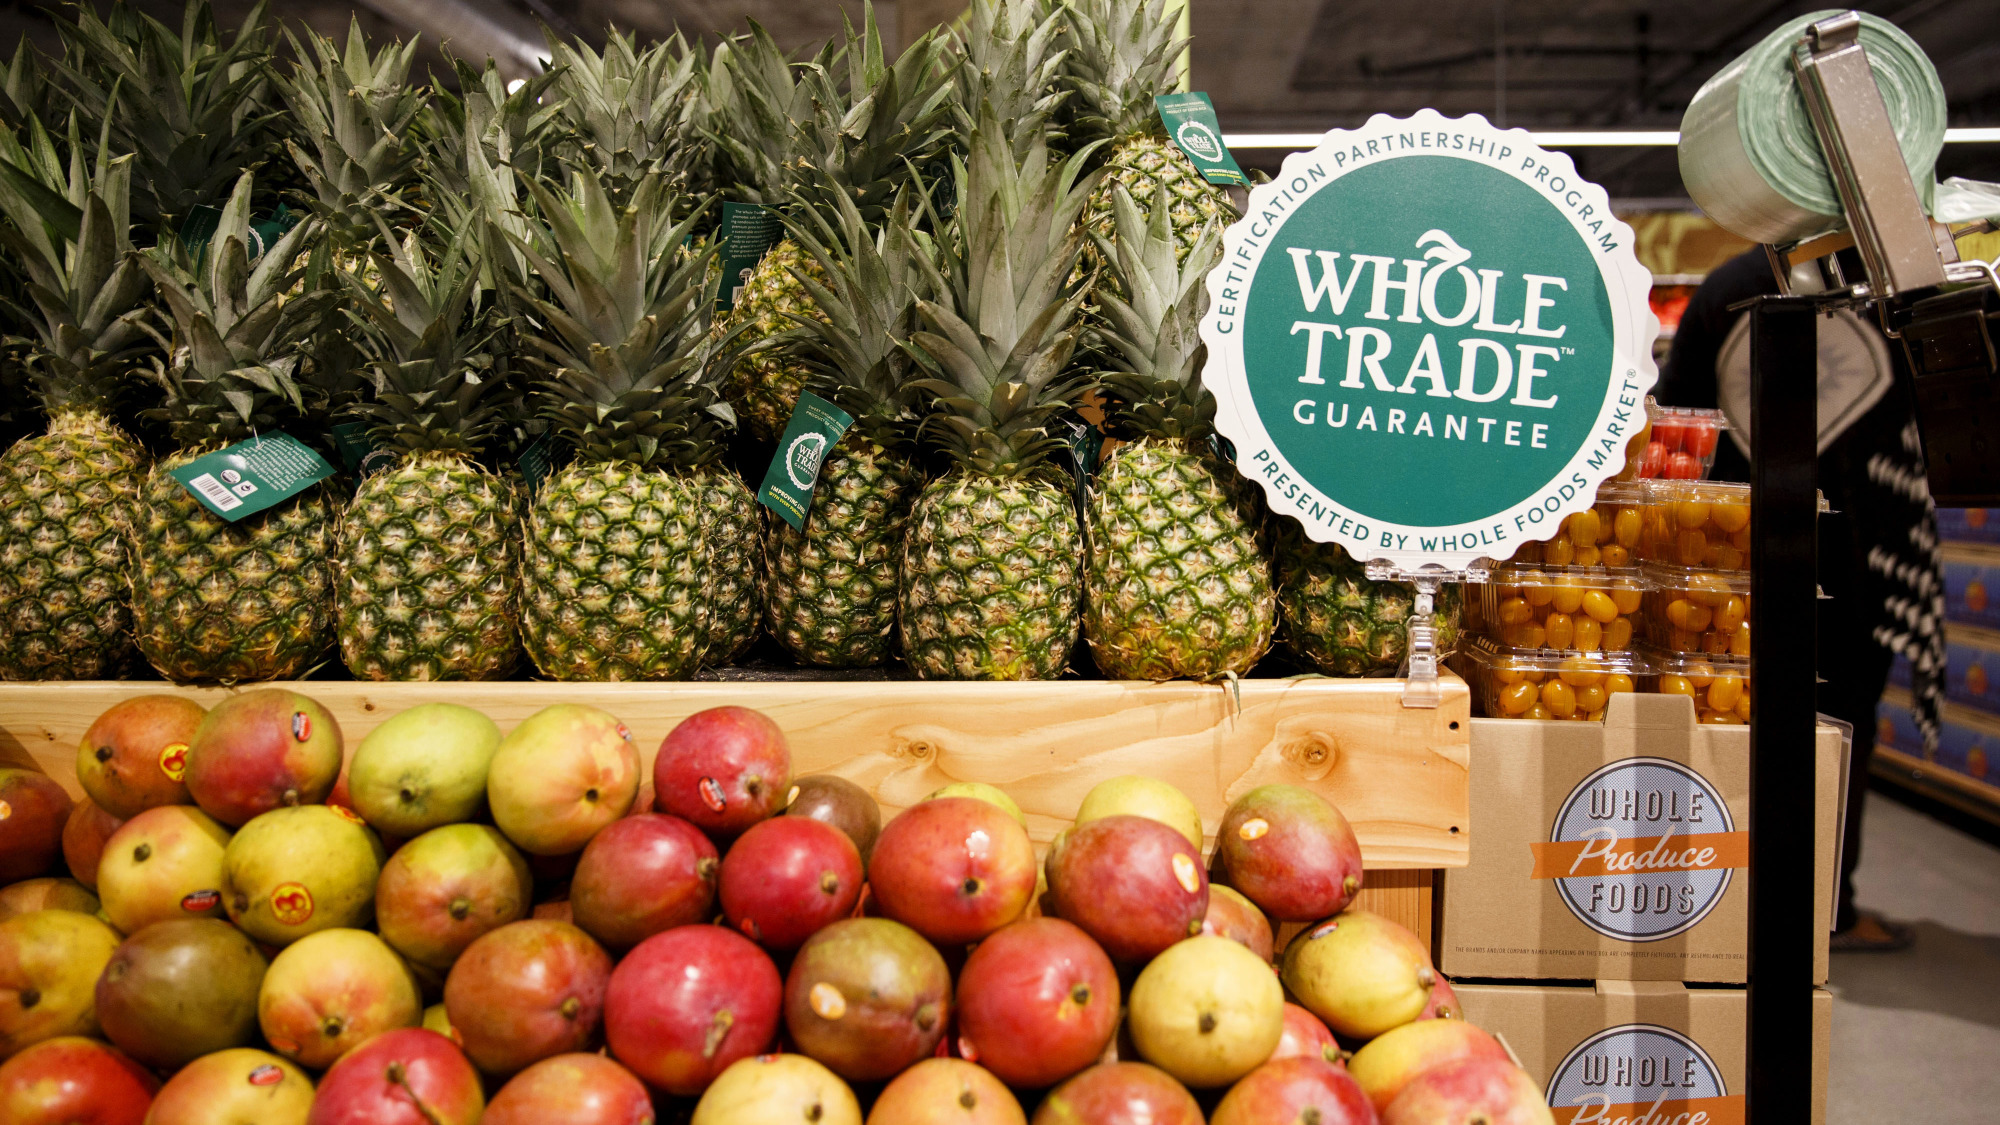 whole food markets inc Whole foods market's organizational structure is examined in this case study and analysis to show how the company maintains its business growth and success.